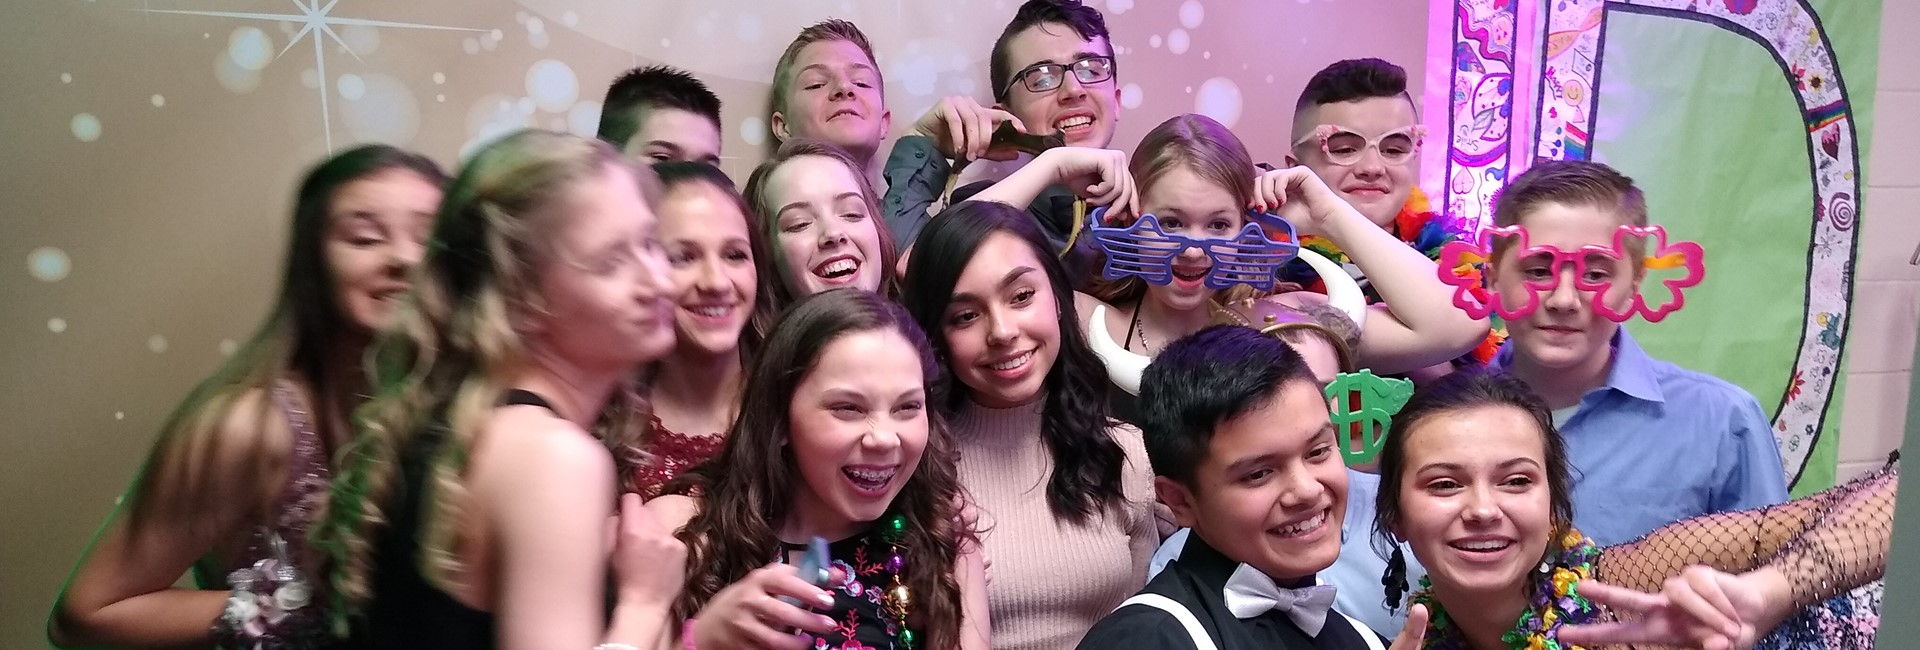 KVMS Winter Semi-Formal Masquerade Dance 2020